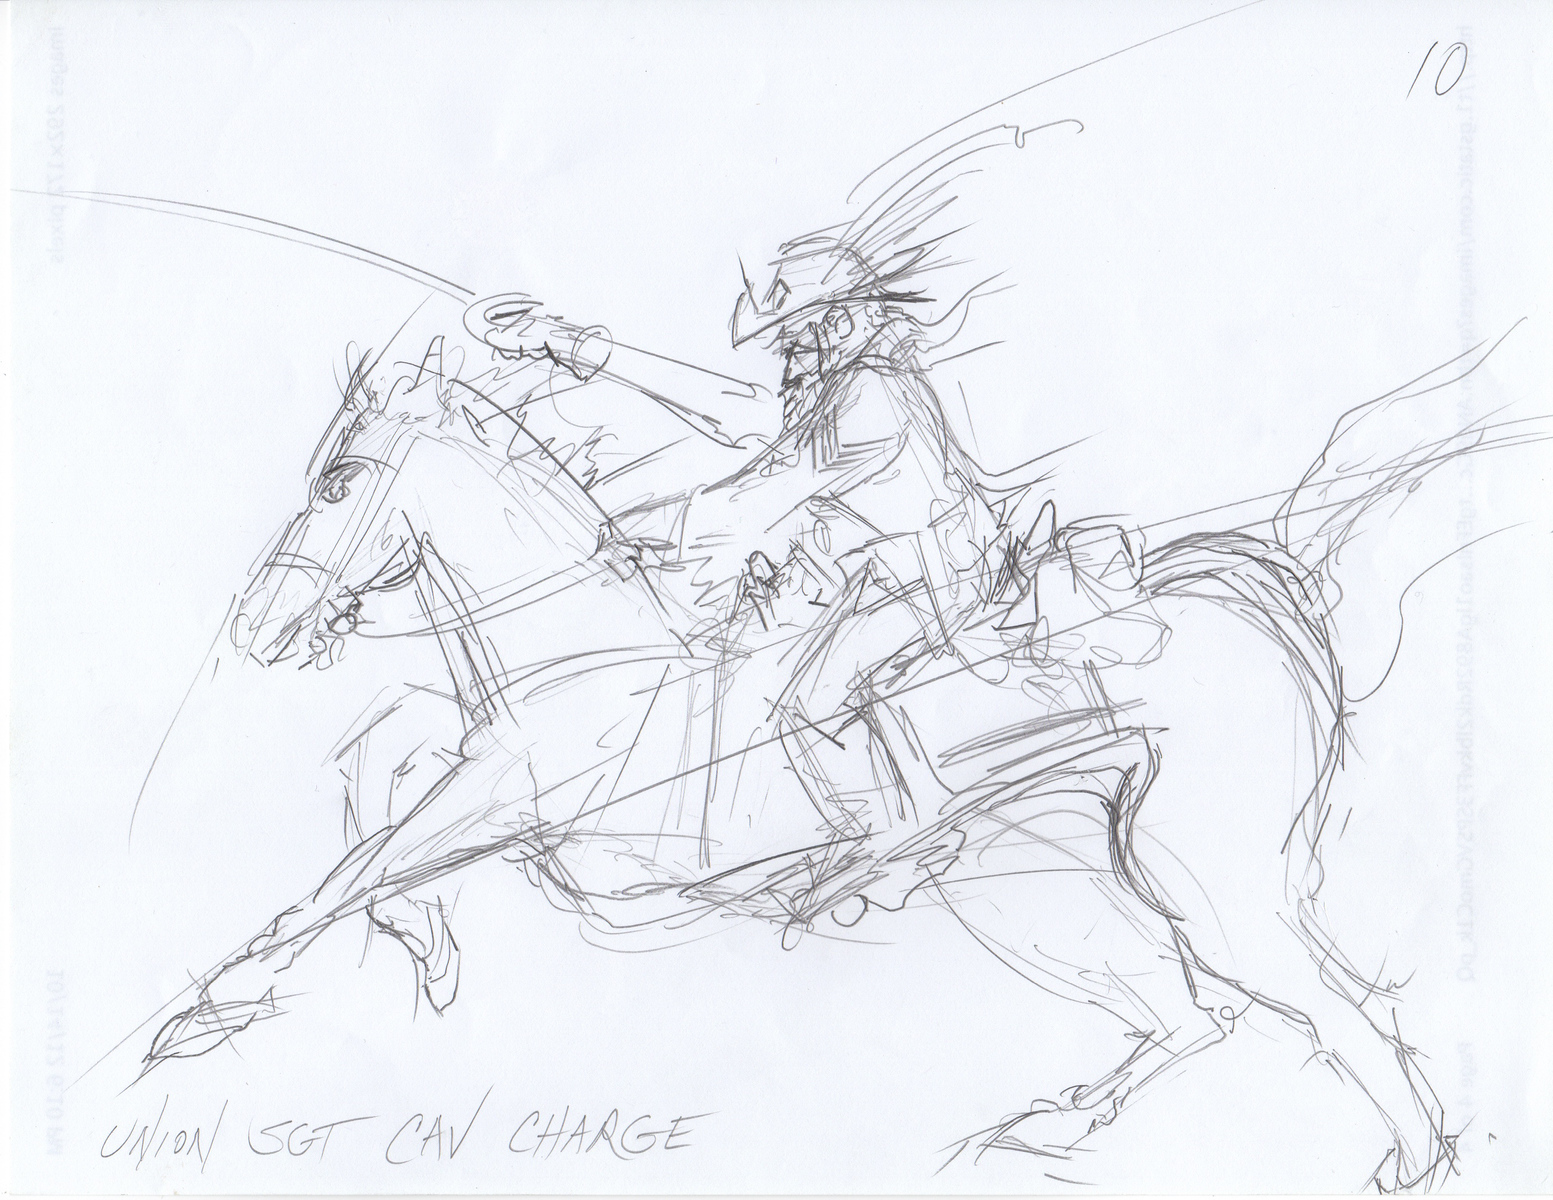 Union Sergeant Cavalry Charge